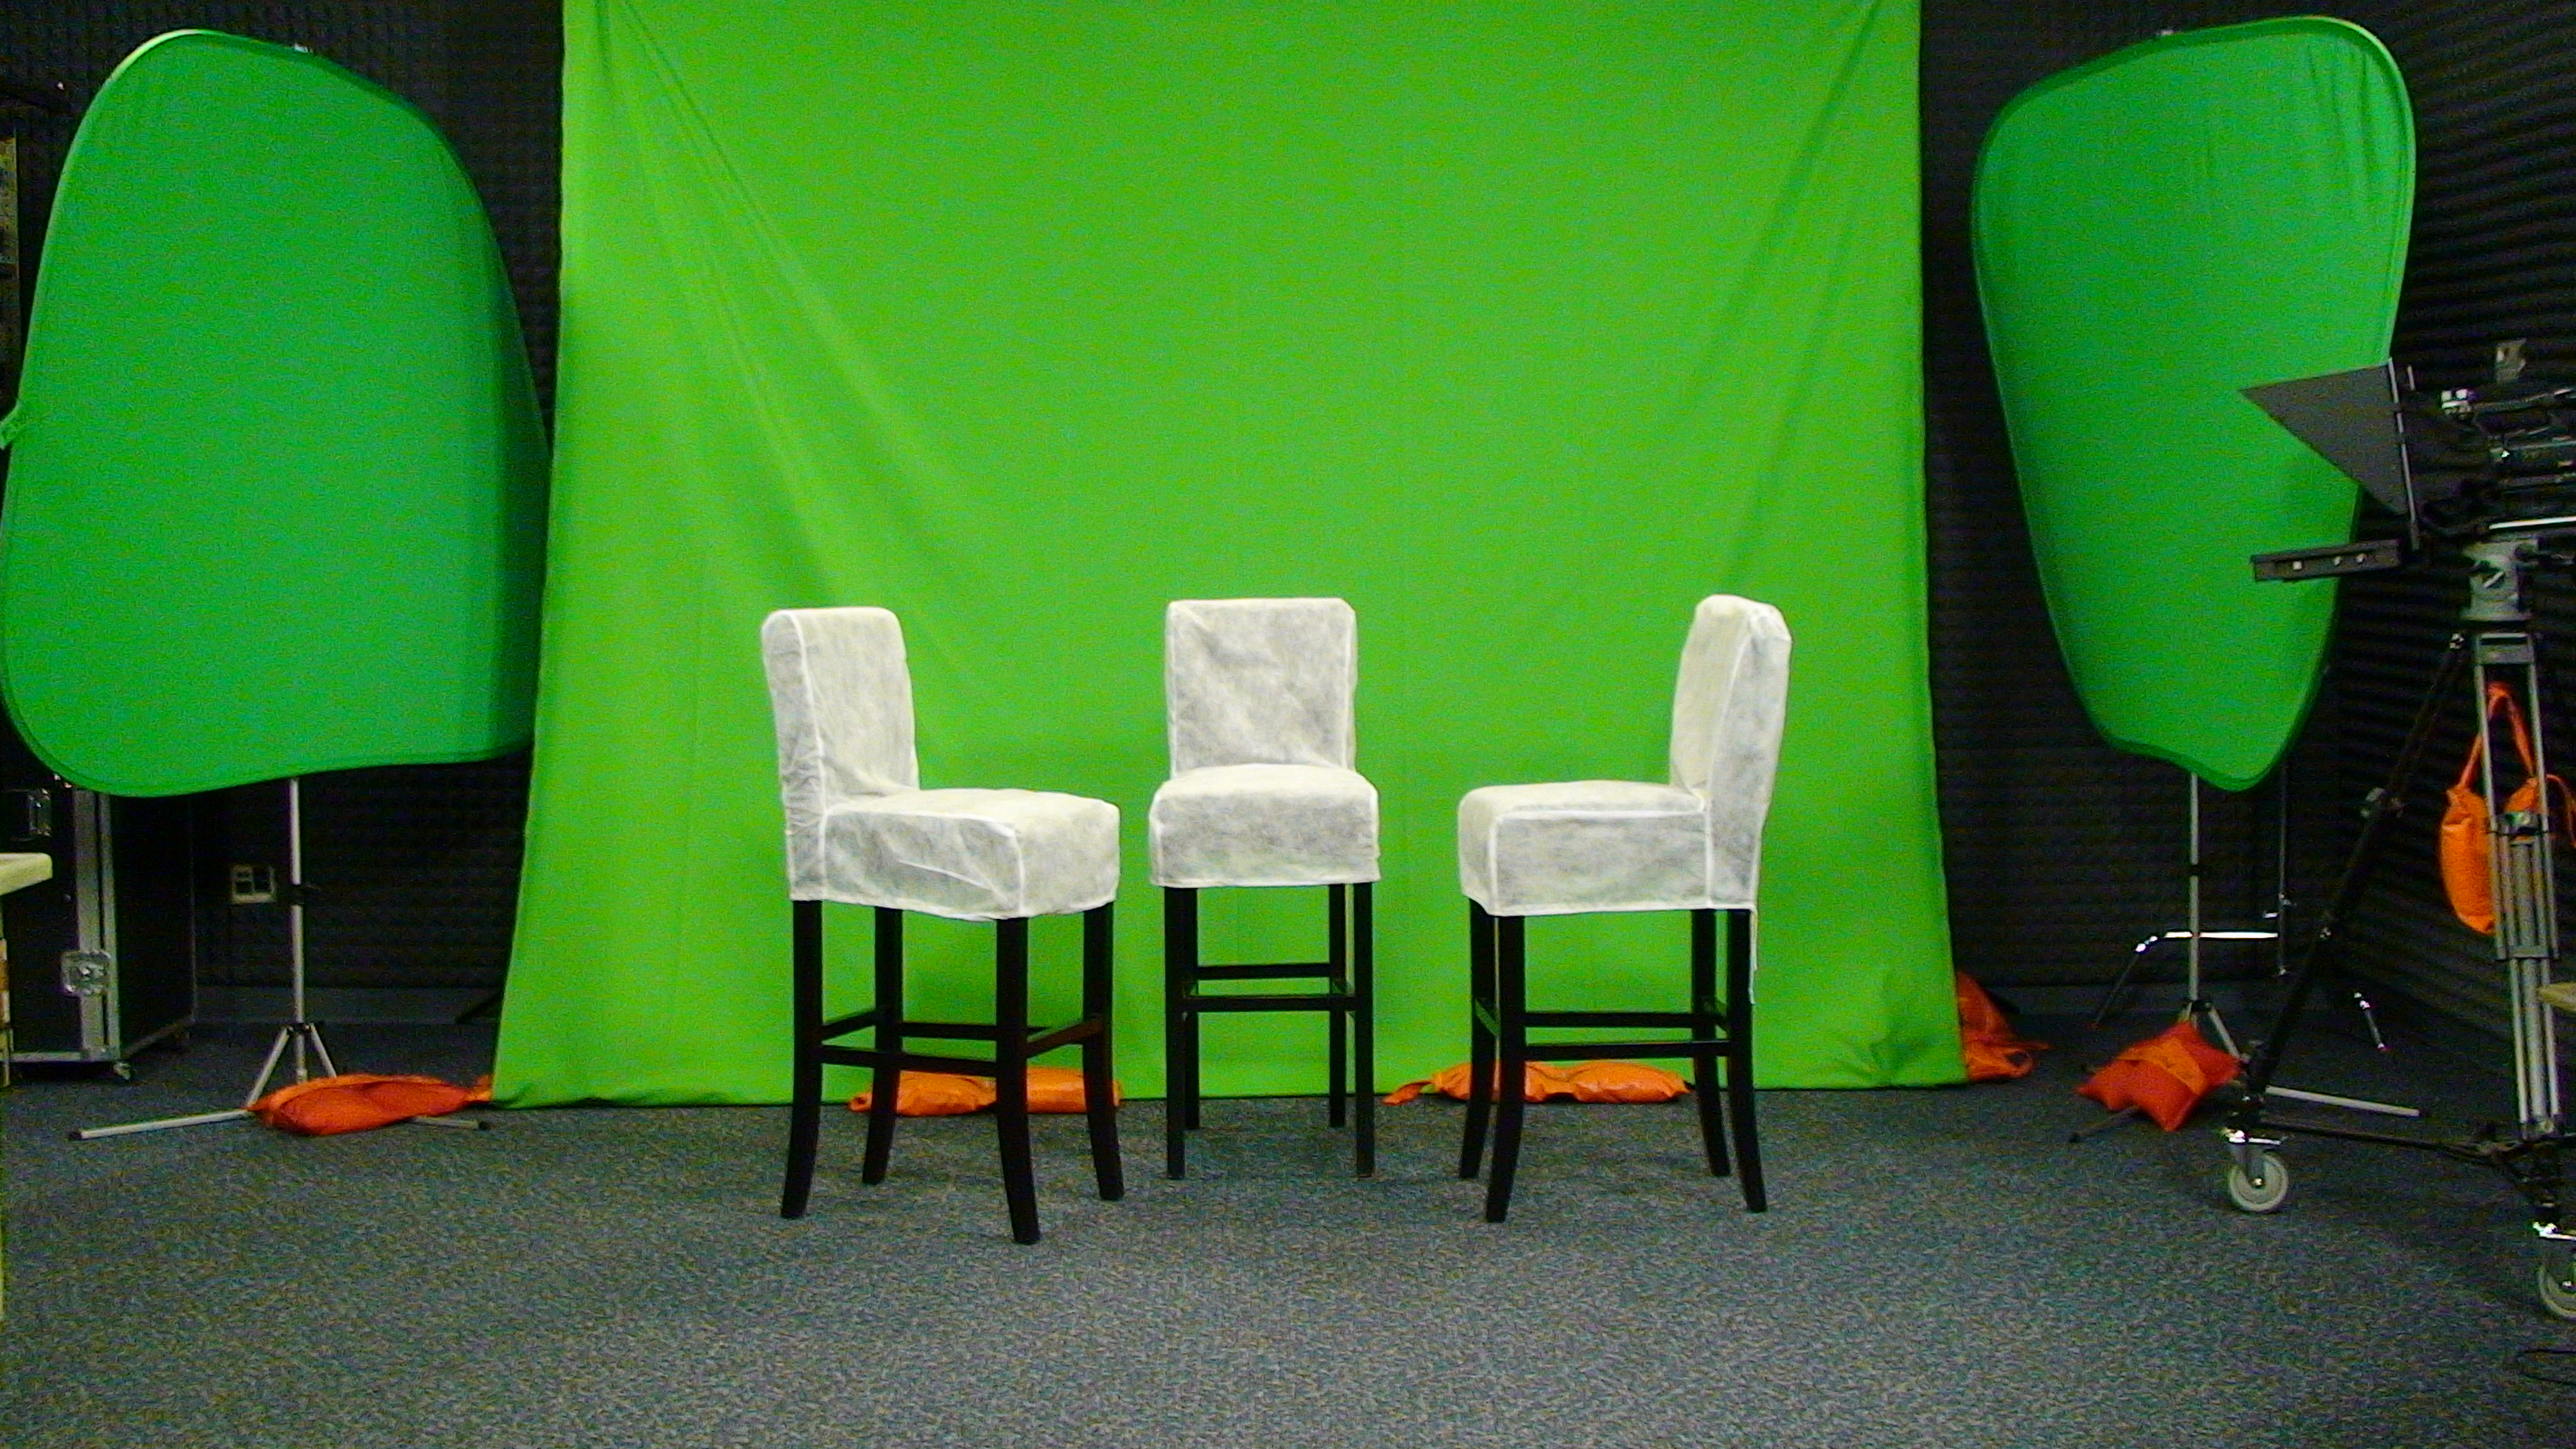 Digital Media Studio